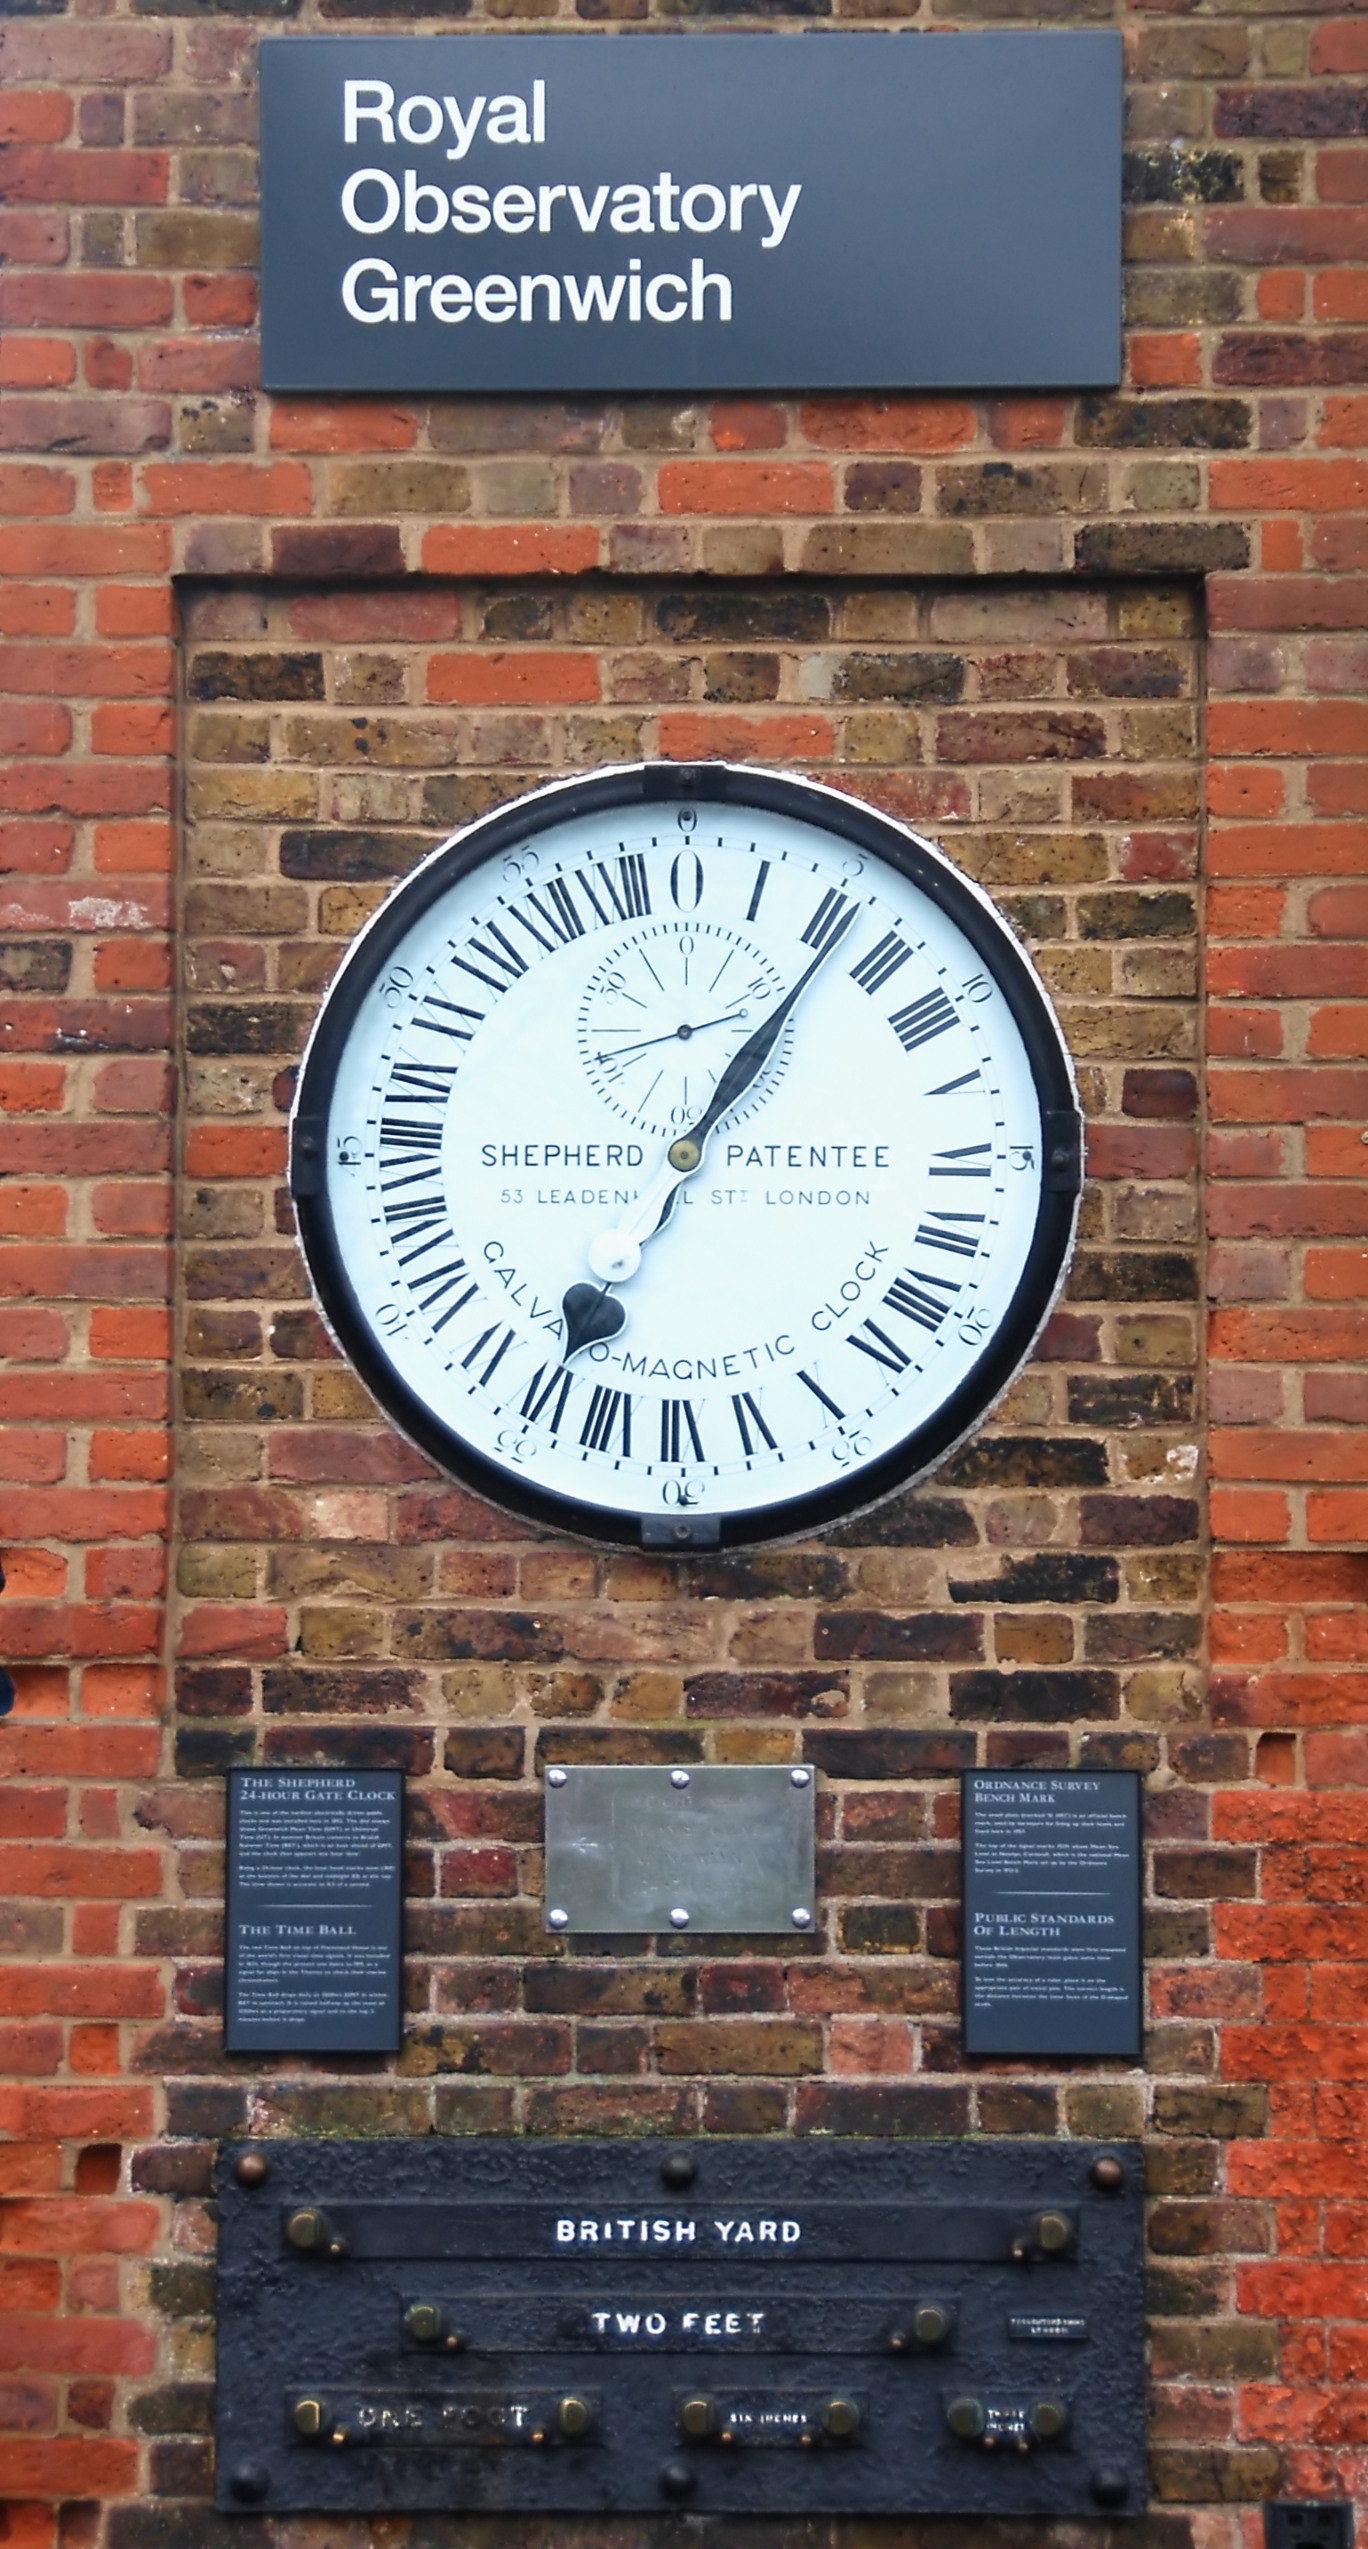 http://upload.wikimedia.org/wikipedia/commons/1/1b/Greenwich_clock.jpg